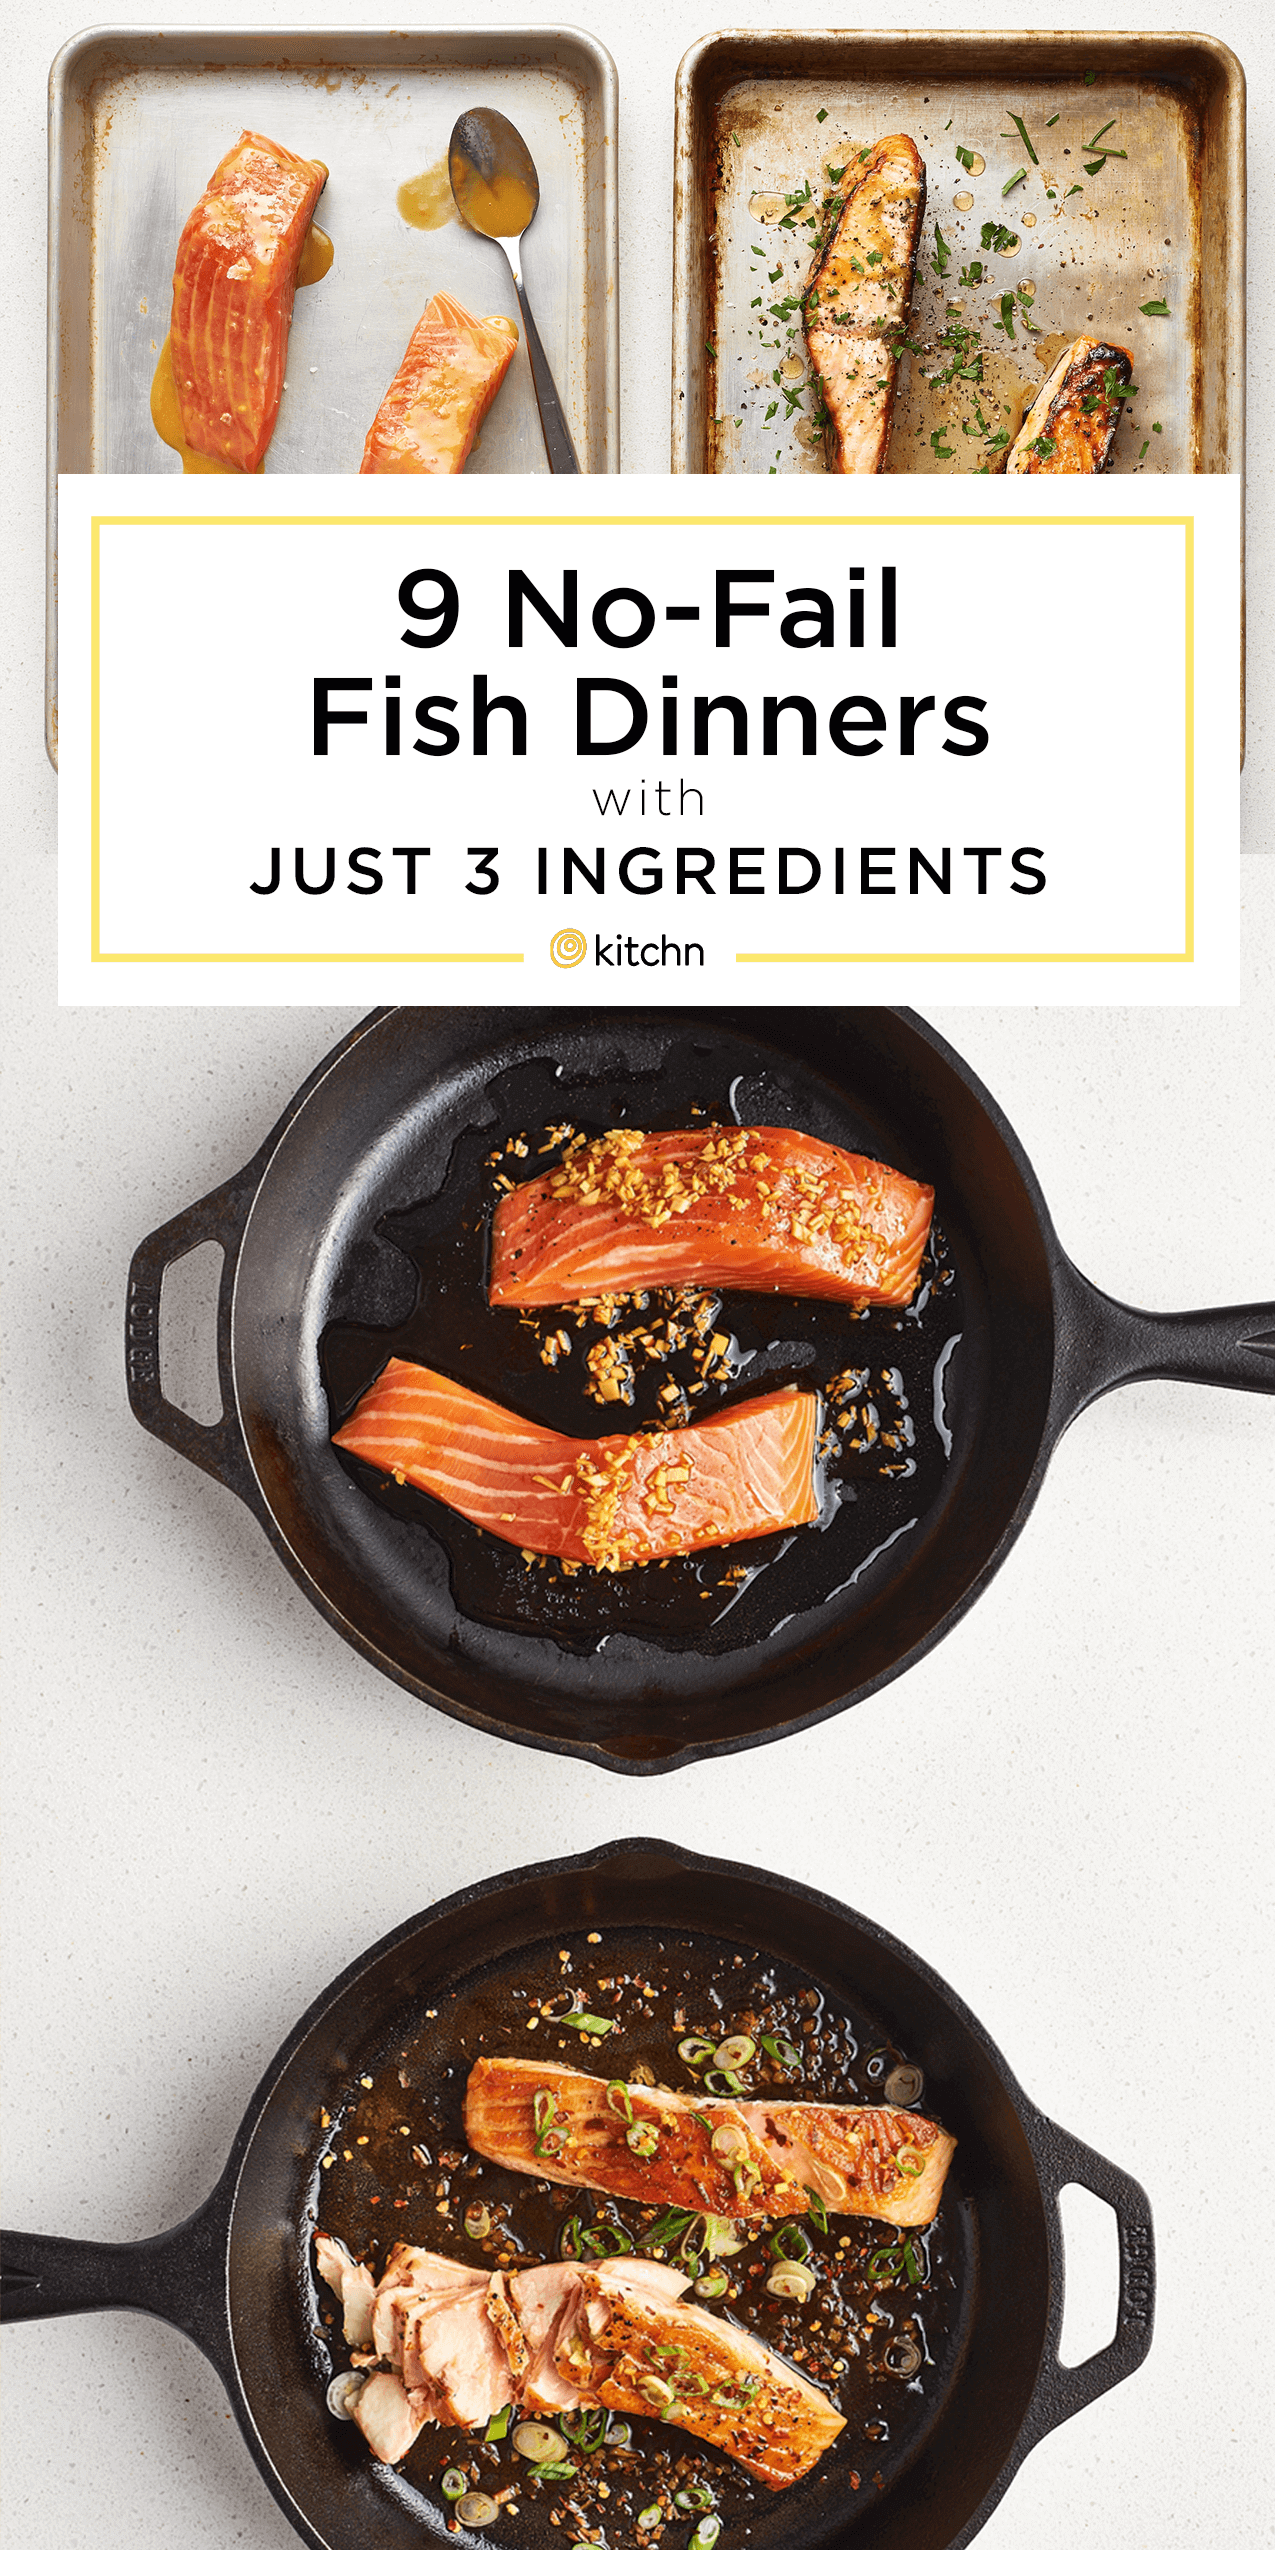 These 9 Fish Dinners Need Only 3 Ingredients and a Glance images